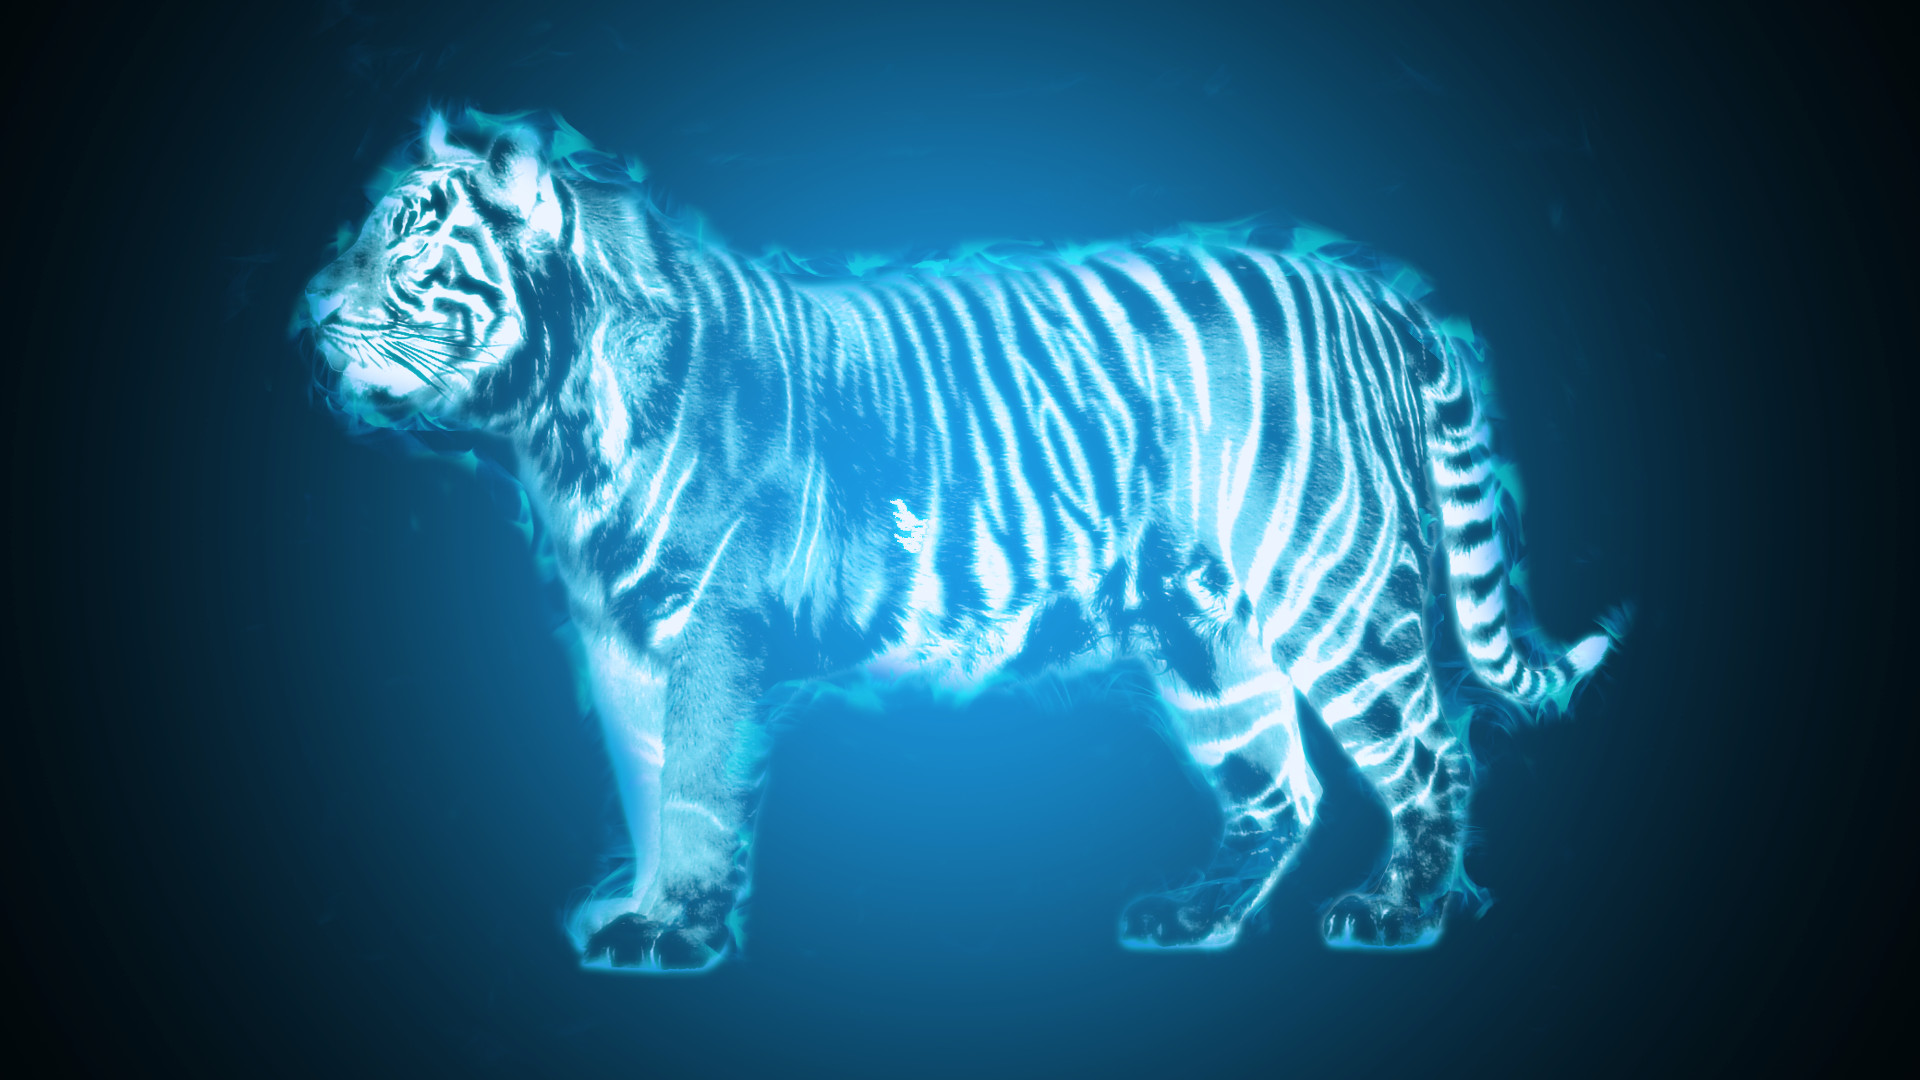 Res: 1920x1080, Tiger Wallpapers Full HD wallpaper search